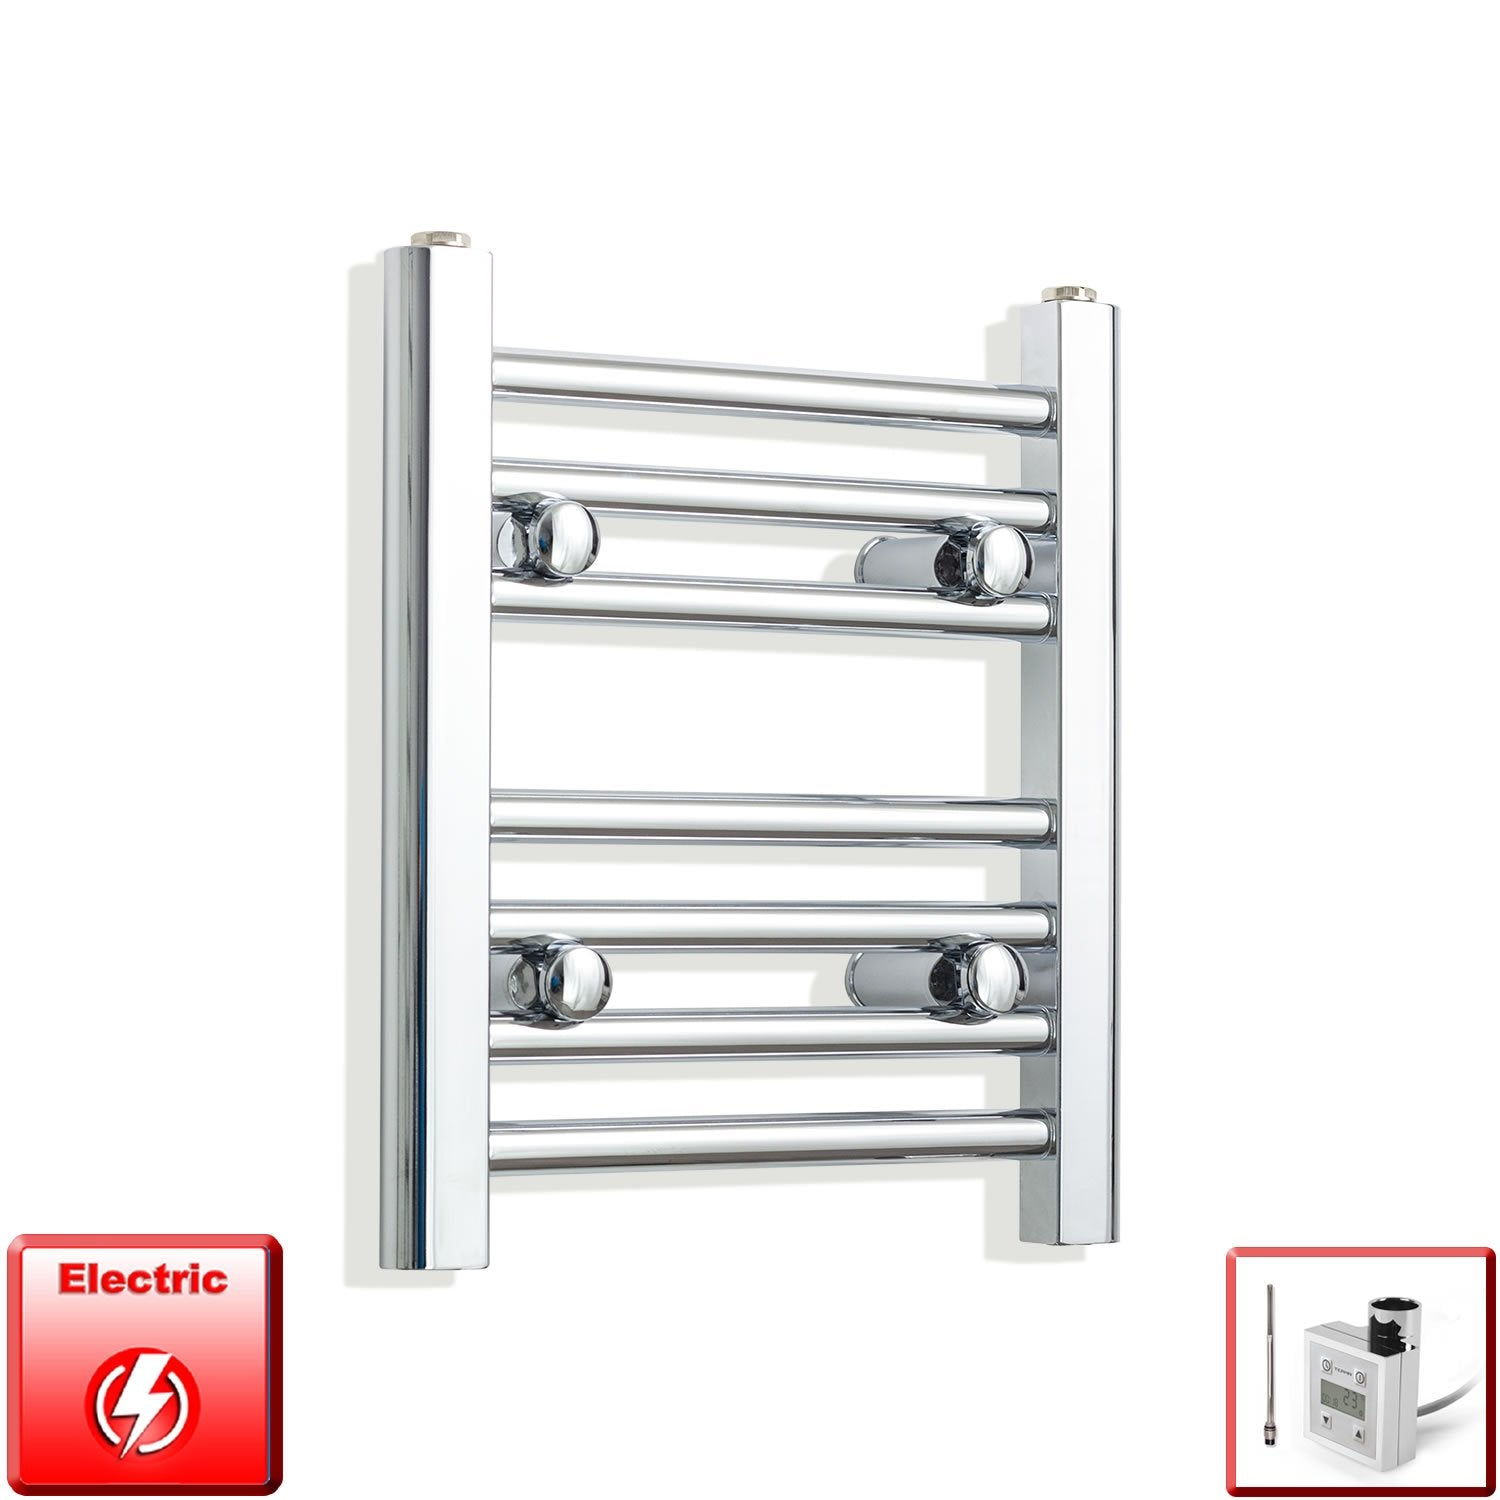 350mm Wide 400mm High Flat Chrome Pre-Filled Electric Heated Towel Rail Radiator HTR,KTX-3 Thermostatic Element